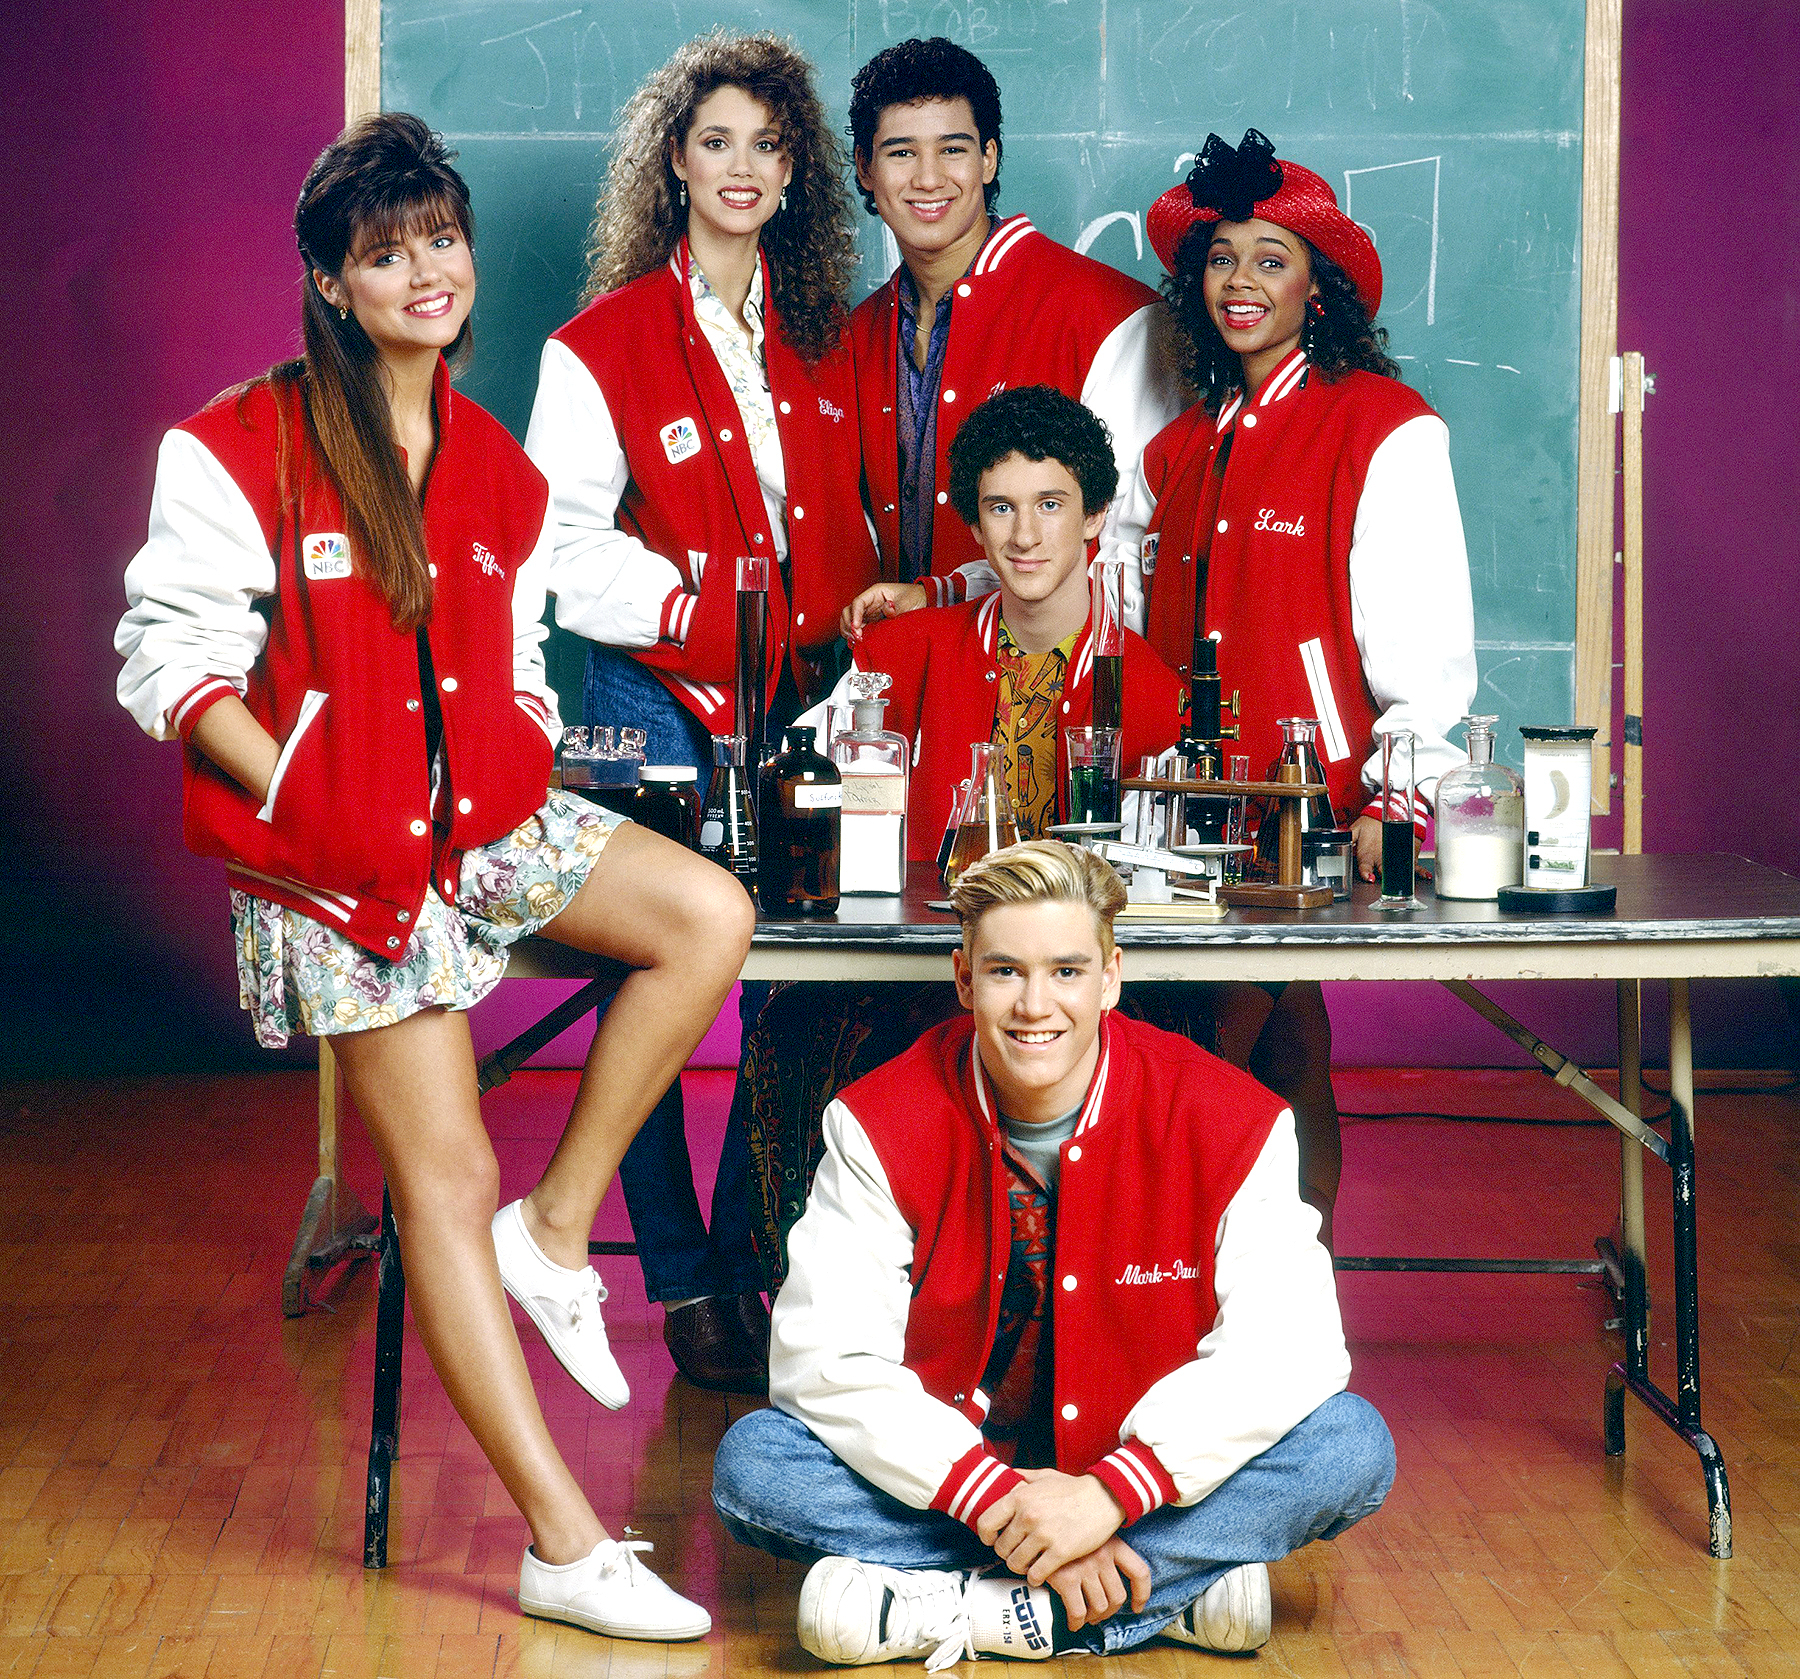 Tiffani Thiessen as Kelly Kapowski, Elizabeth Berkley as Jessie Spano, Mario Lopez as A.C. Slater, Lark Voorhies as Lisa Turtle; Middle: Dustin Diamond as Screech Powers; Bottom: Mark-Paul Gosselaar as Zack Morris on Saved by the Bell.